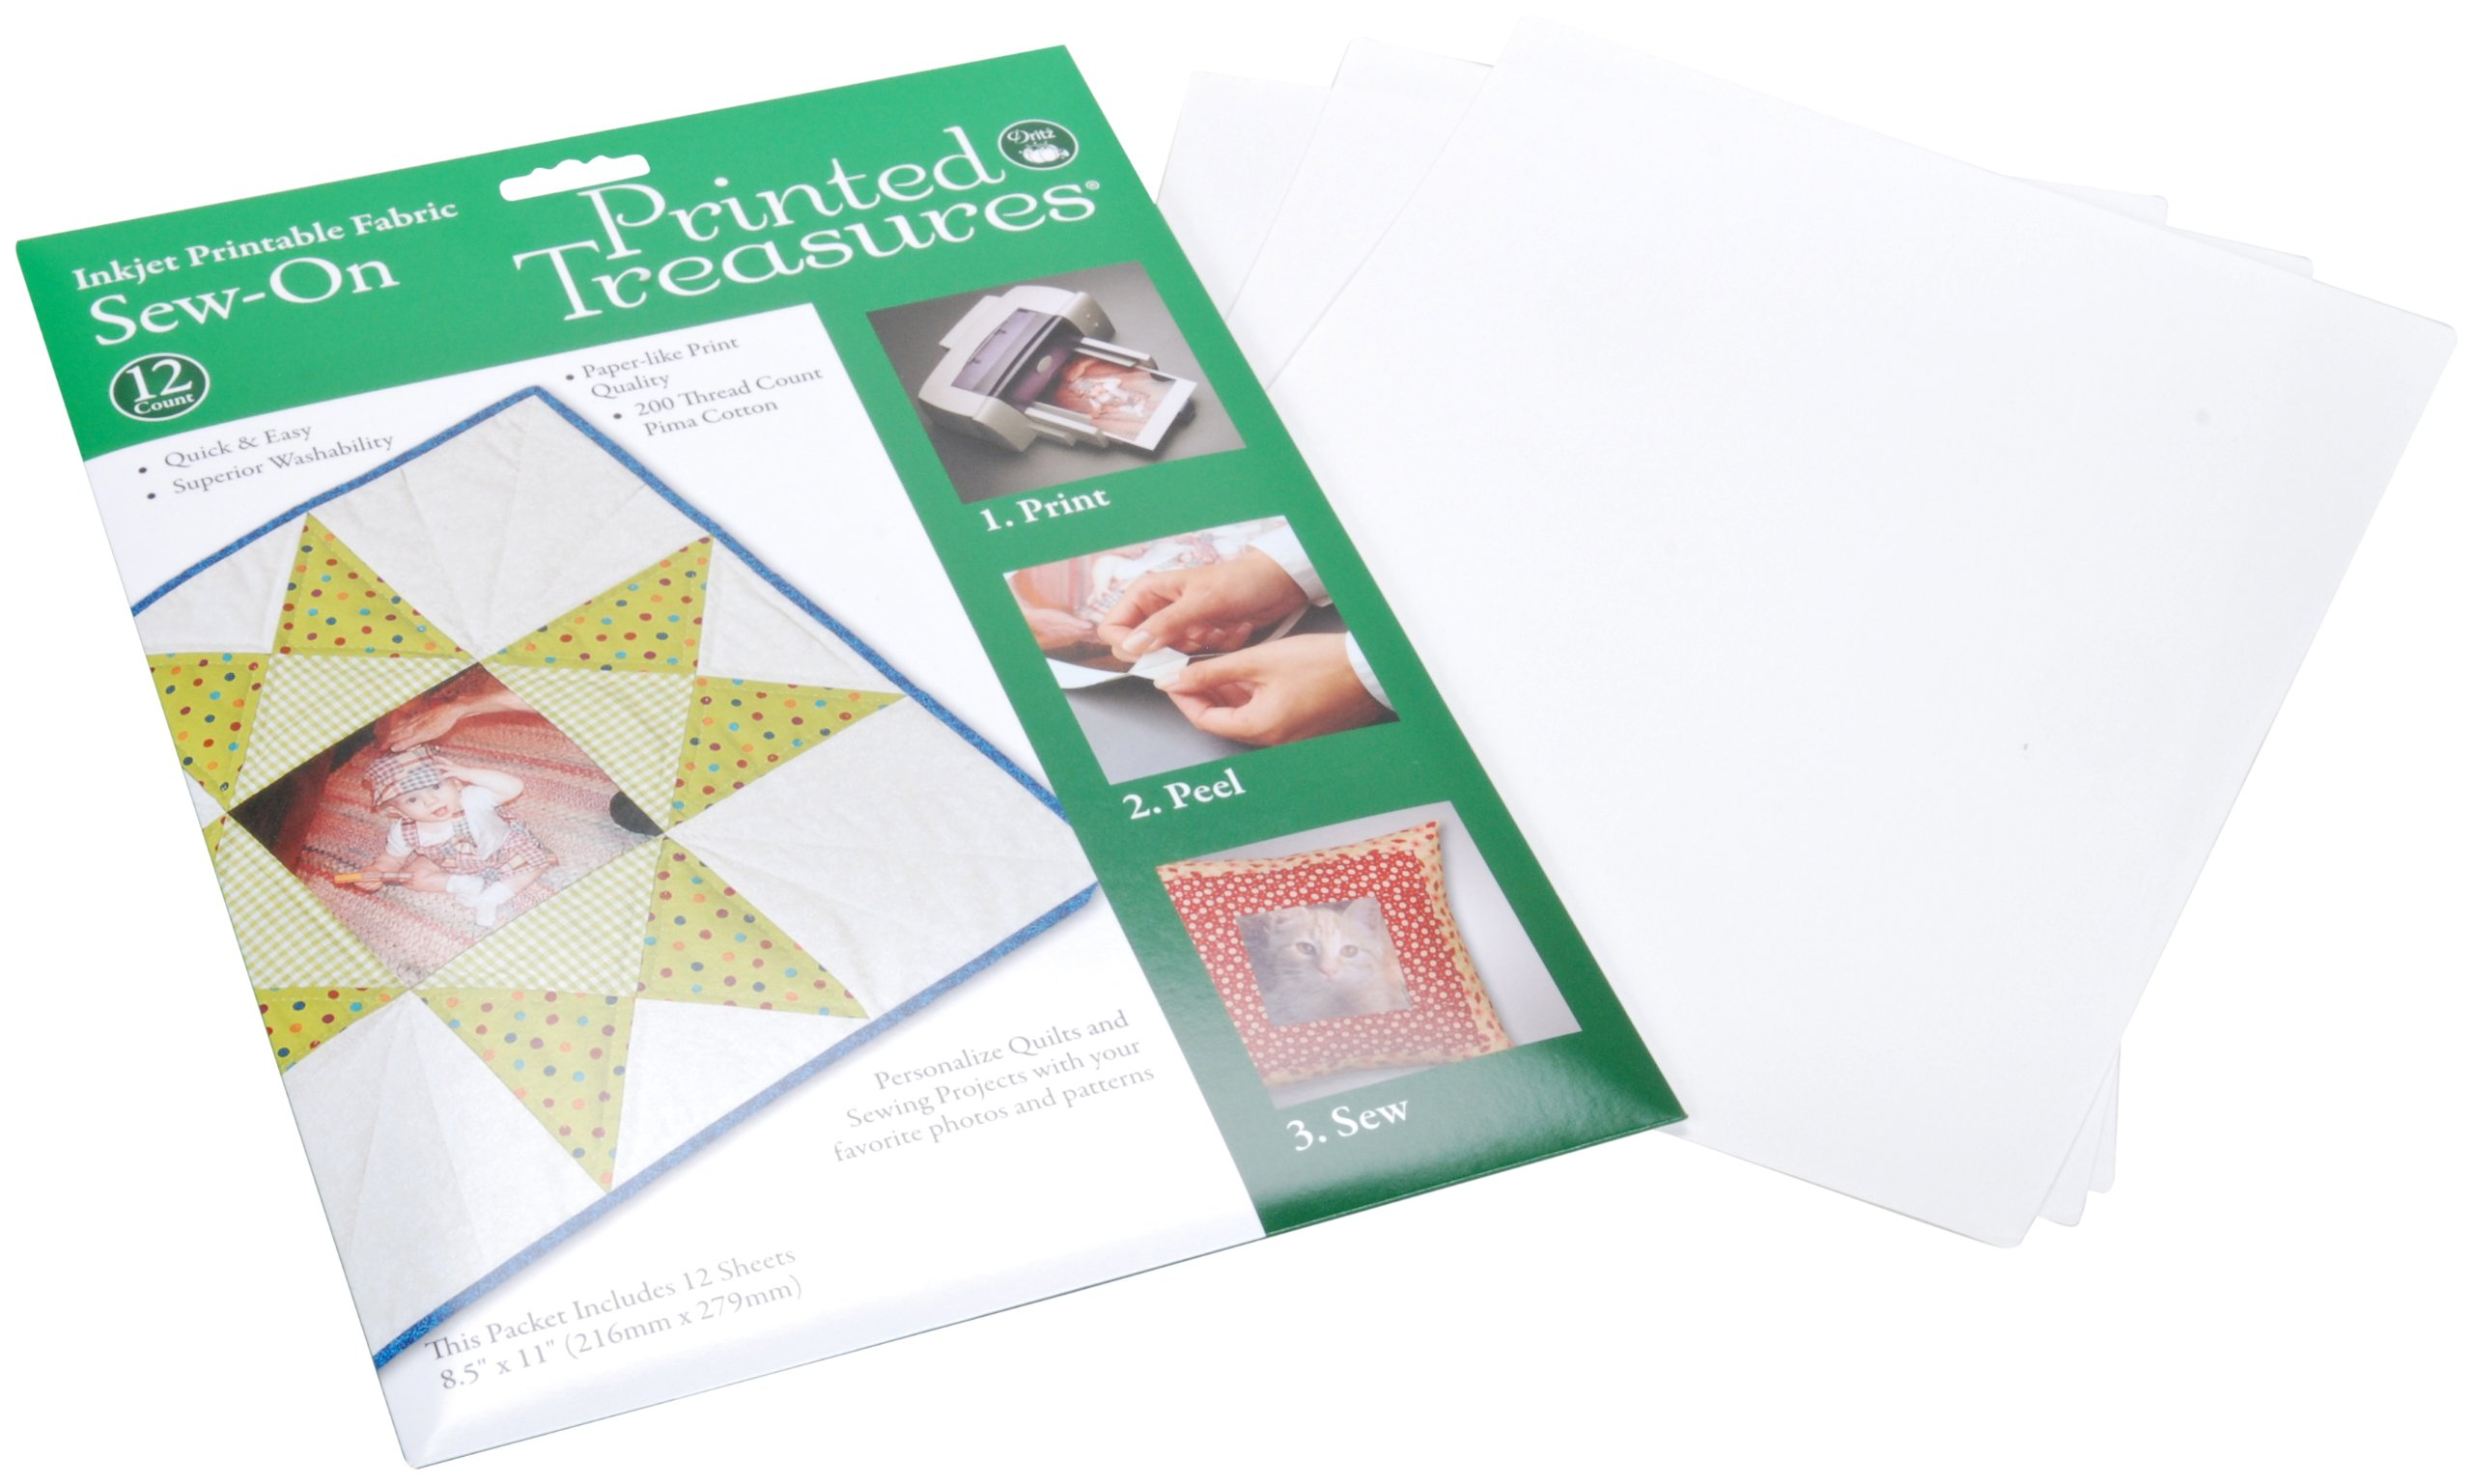 Printed Treasures Inkjet Printable Fabric, Sew-In, 12 sheets by Dritz (Image #1)